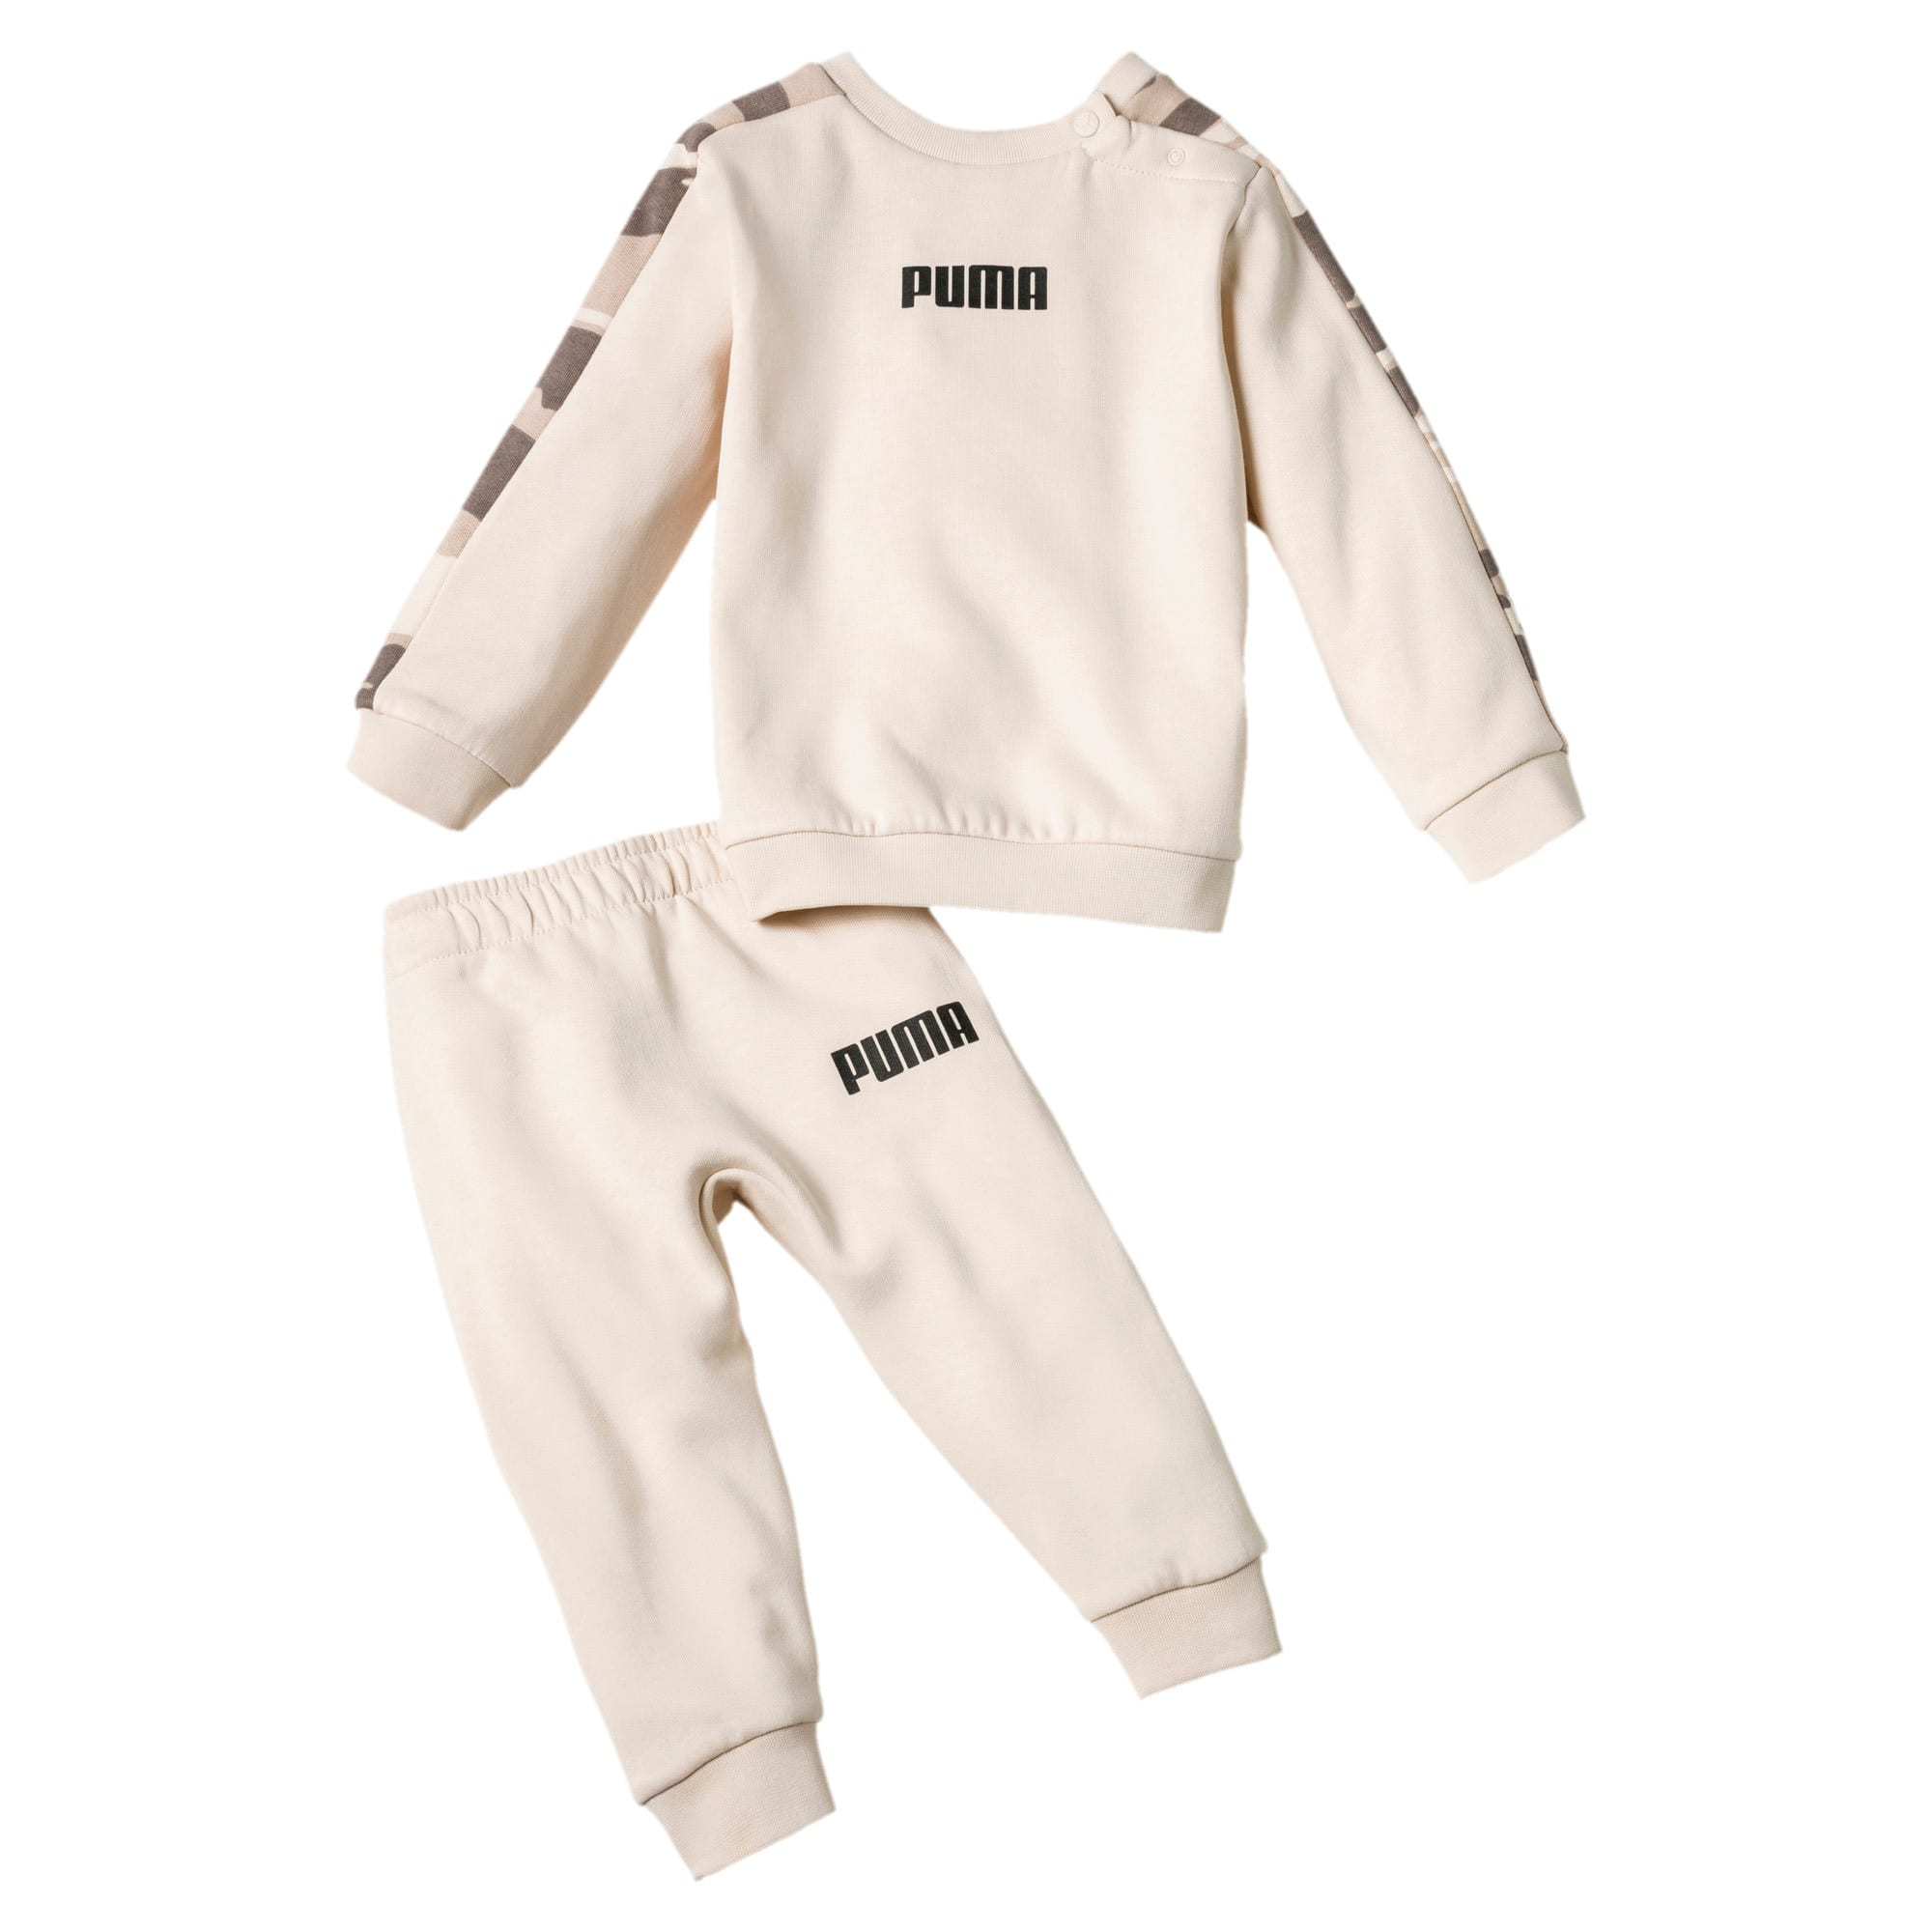 Thumbnail 1 of Street Wear T7 Babies Jogginganzug-Set, White Swan, medium